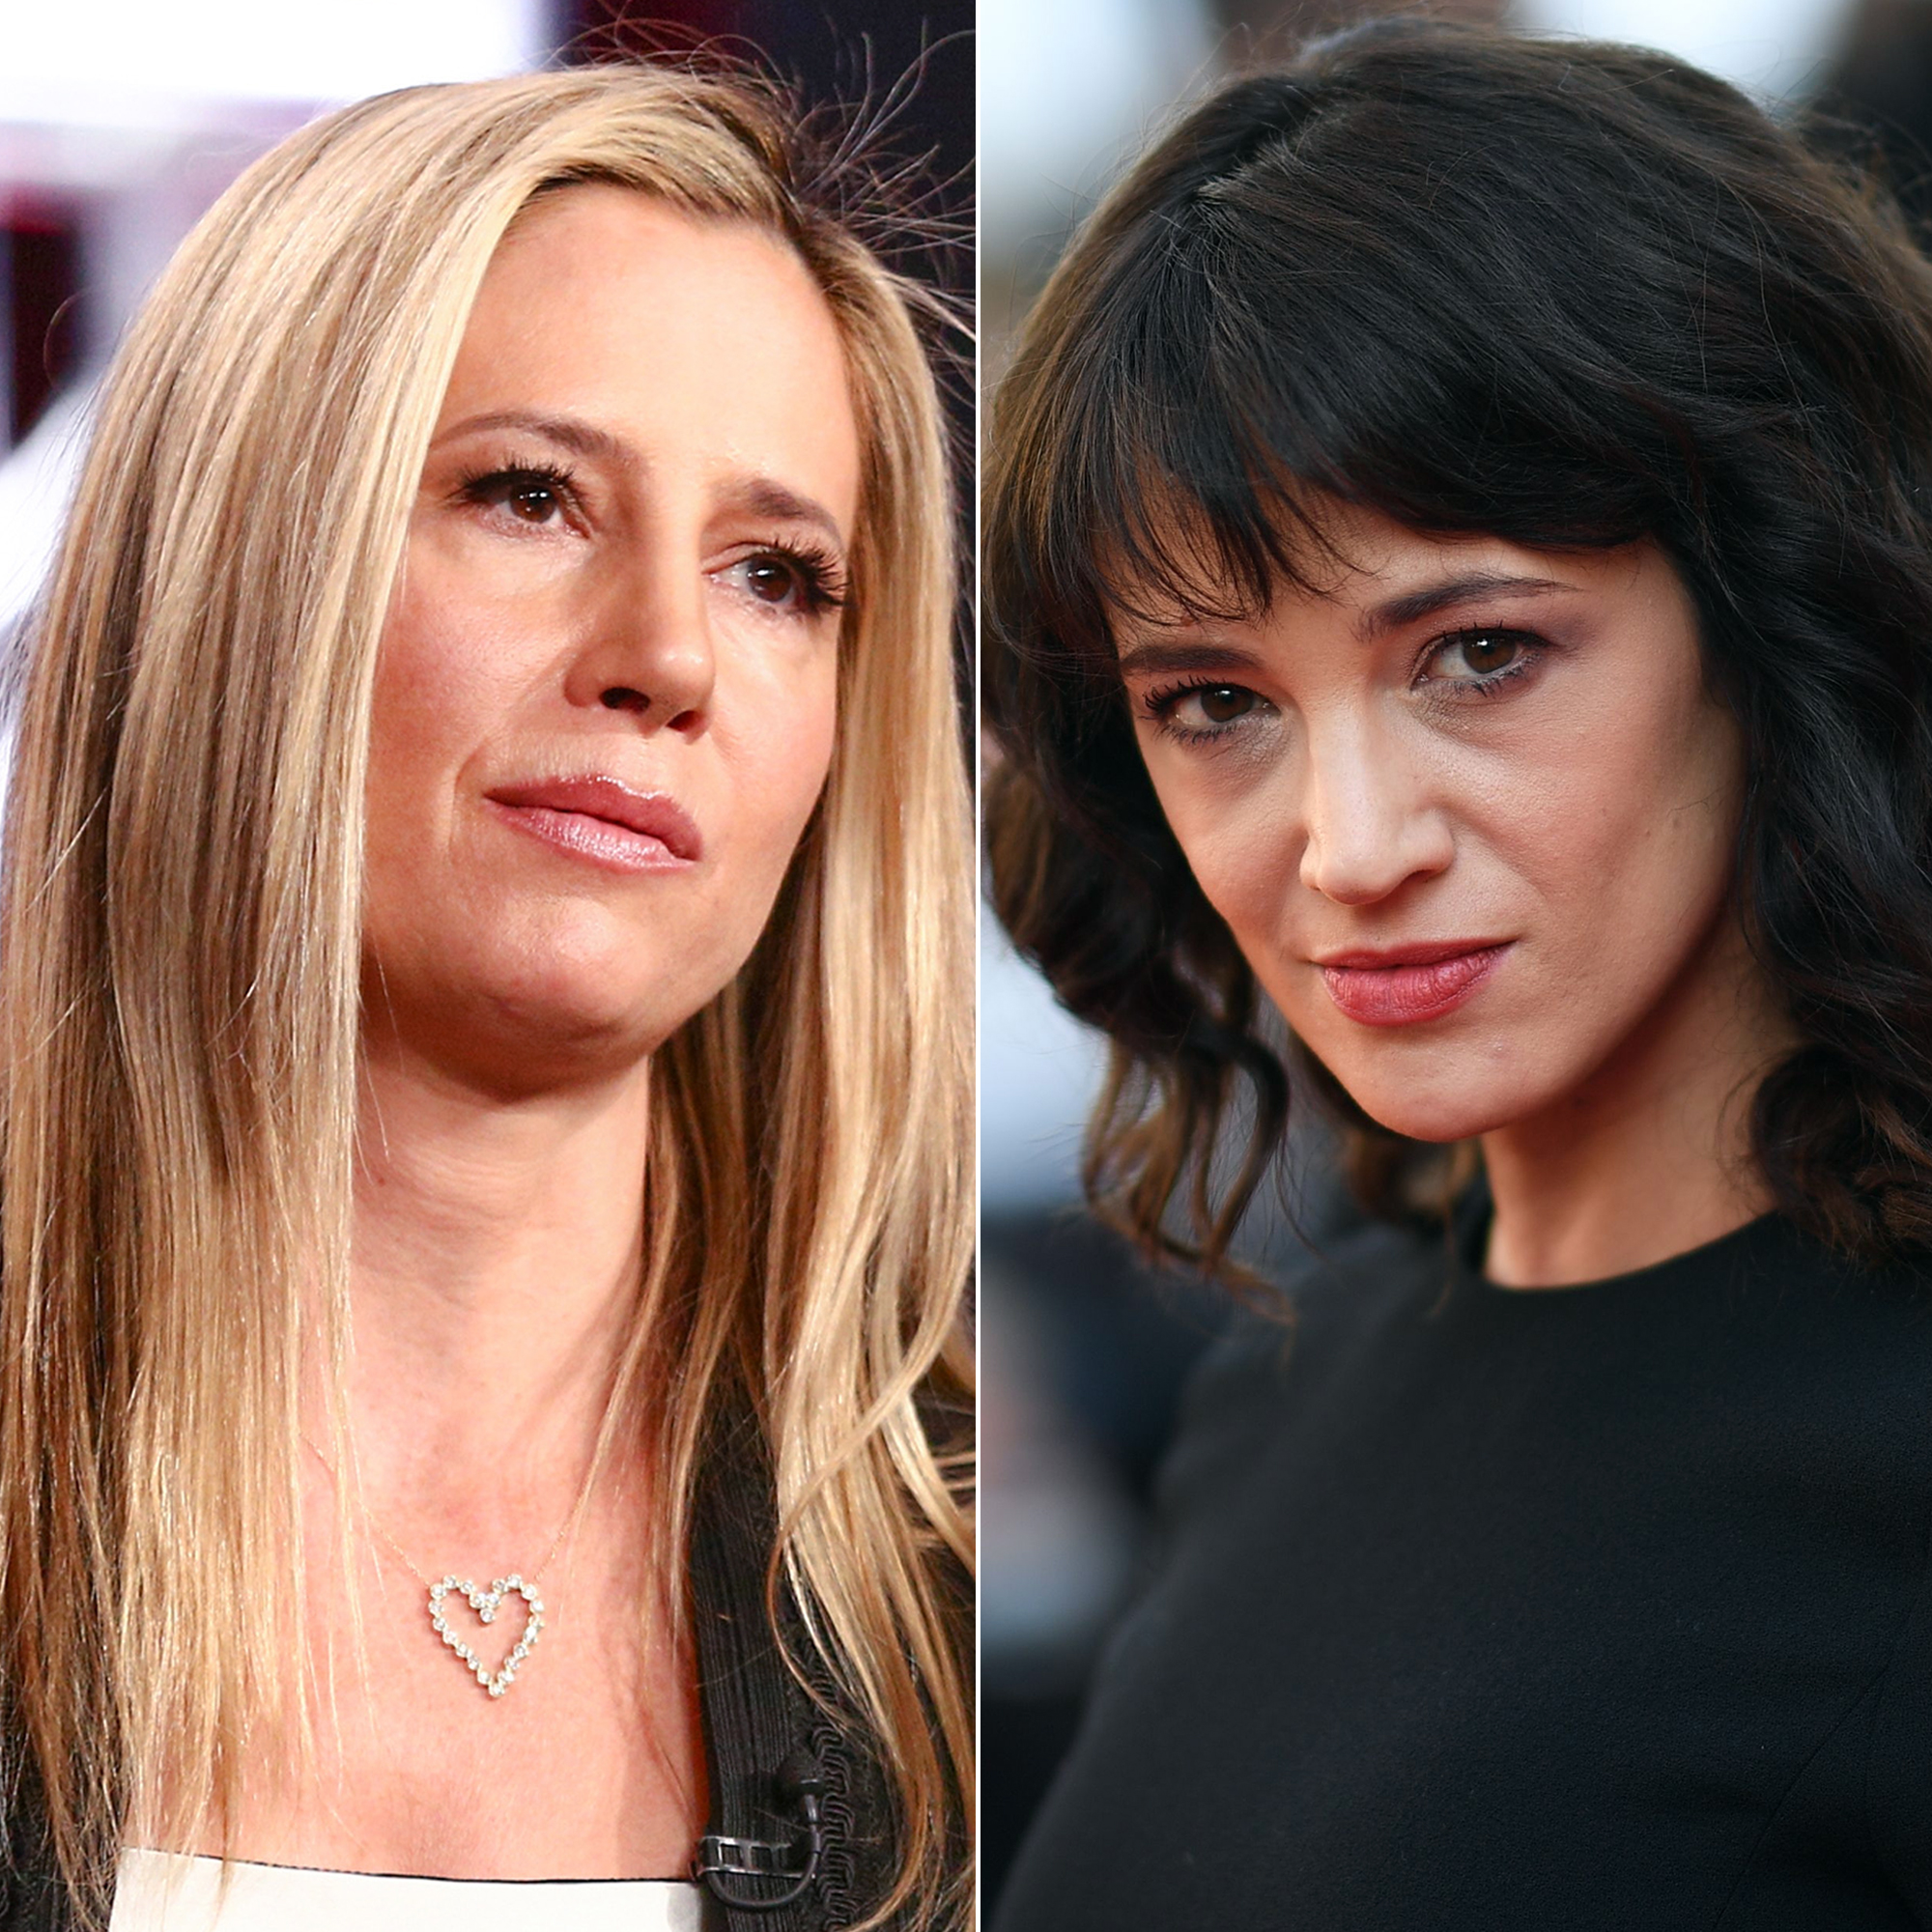 Mira Sorvino Is 'Heartsick' Over Asia Argento Sexual Assault Claim as Photo and Alleged Text Messages Surface